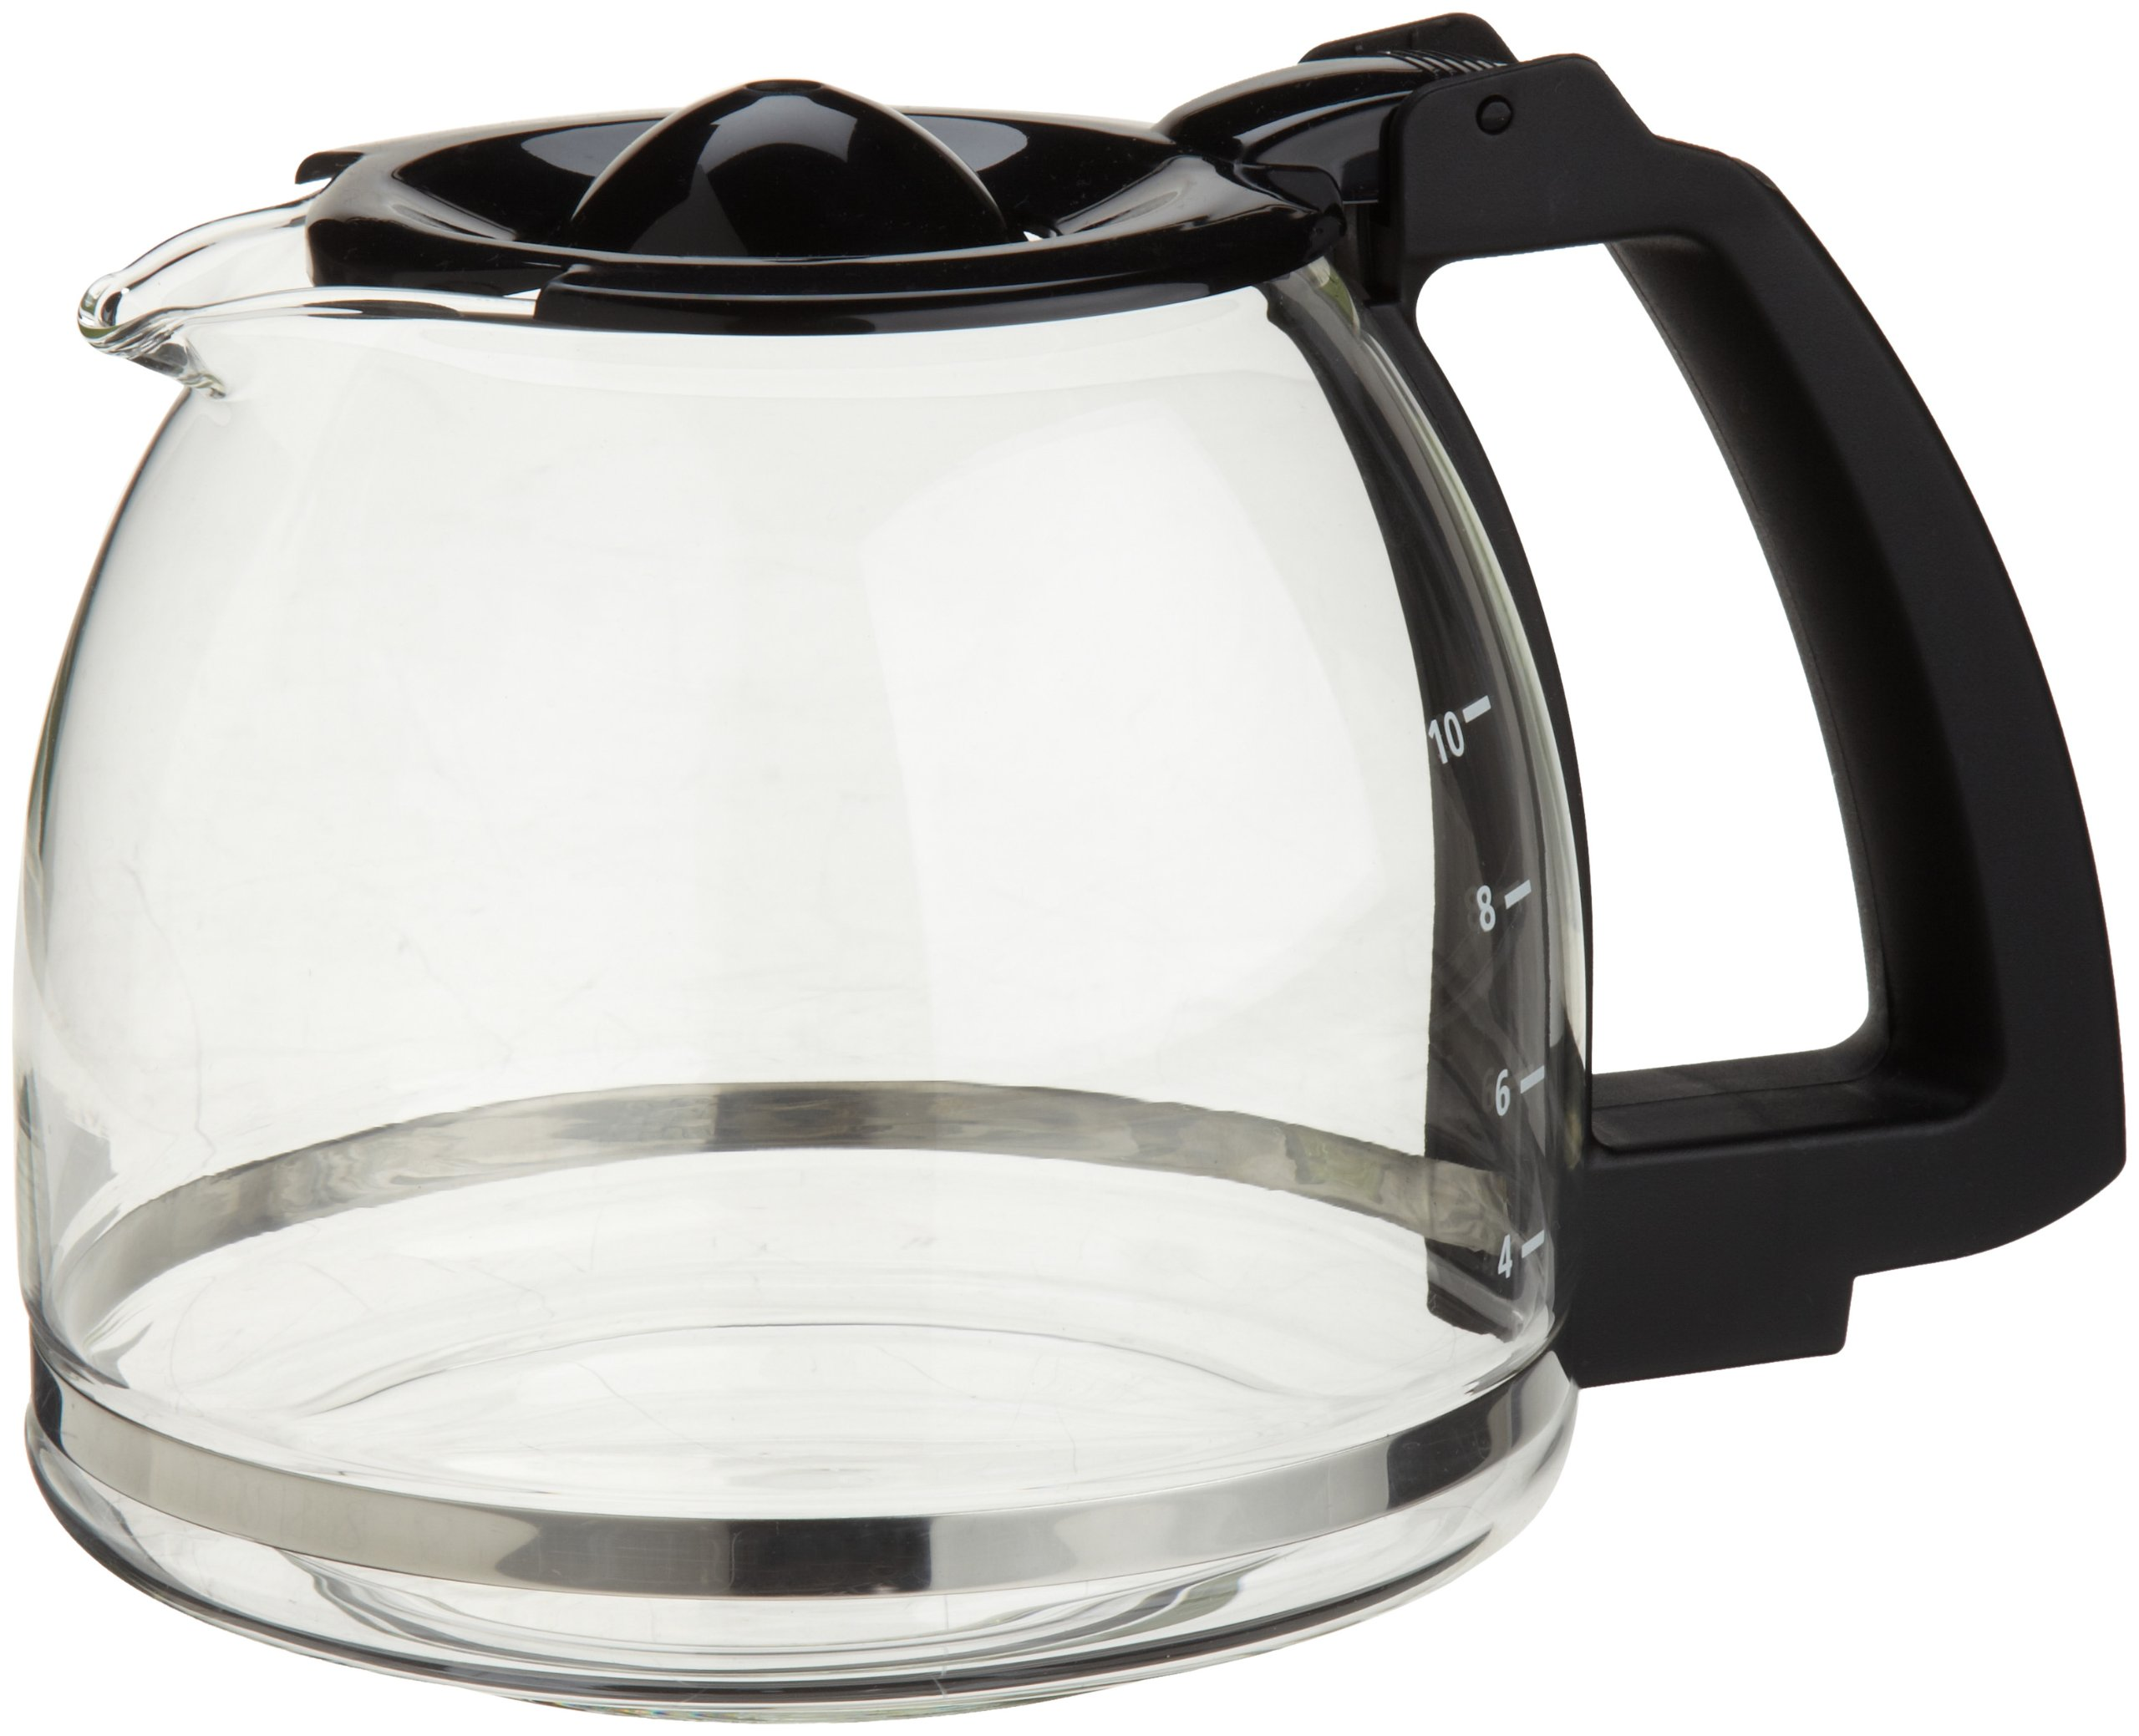 Capresso 4464.01 10-Cup Glass Carafe with Lid for CoffeeTeam GS Coffee Maker by Capresso